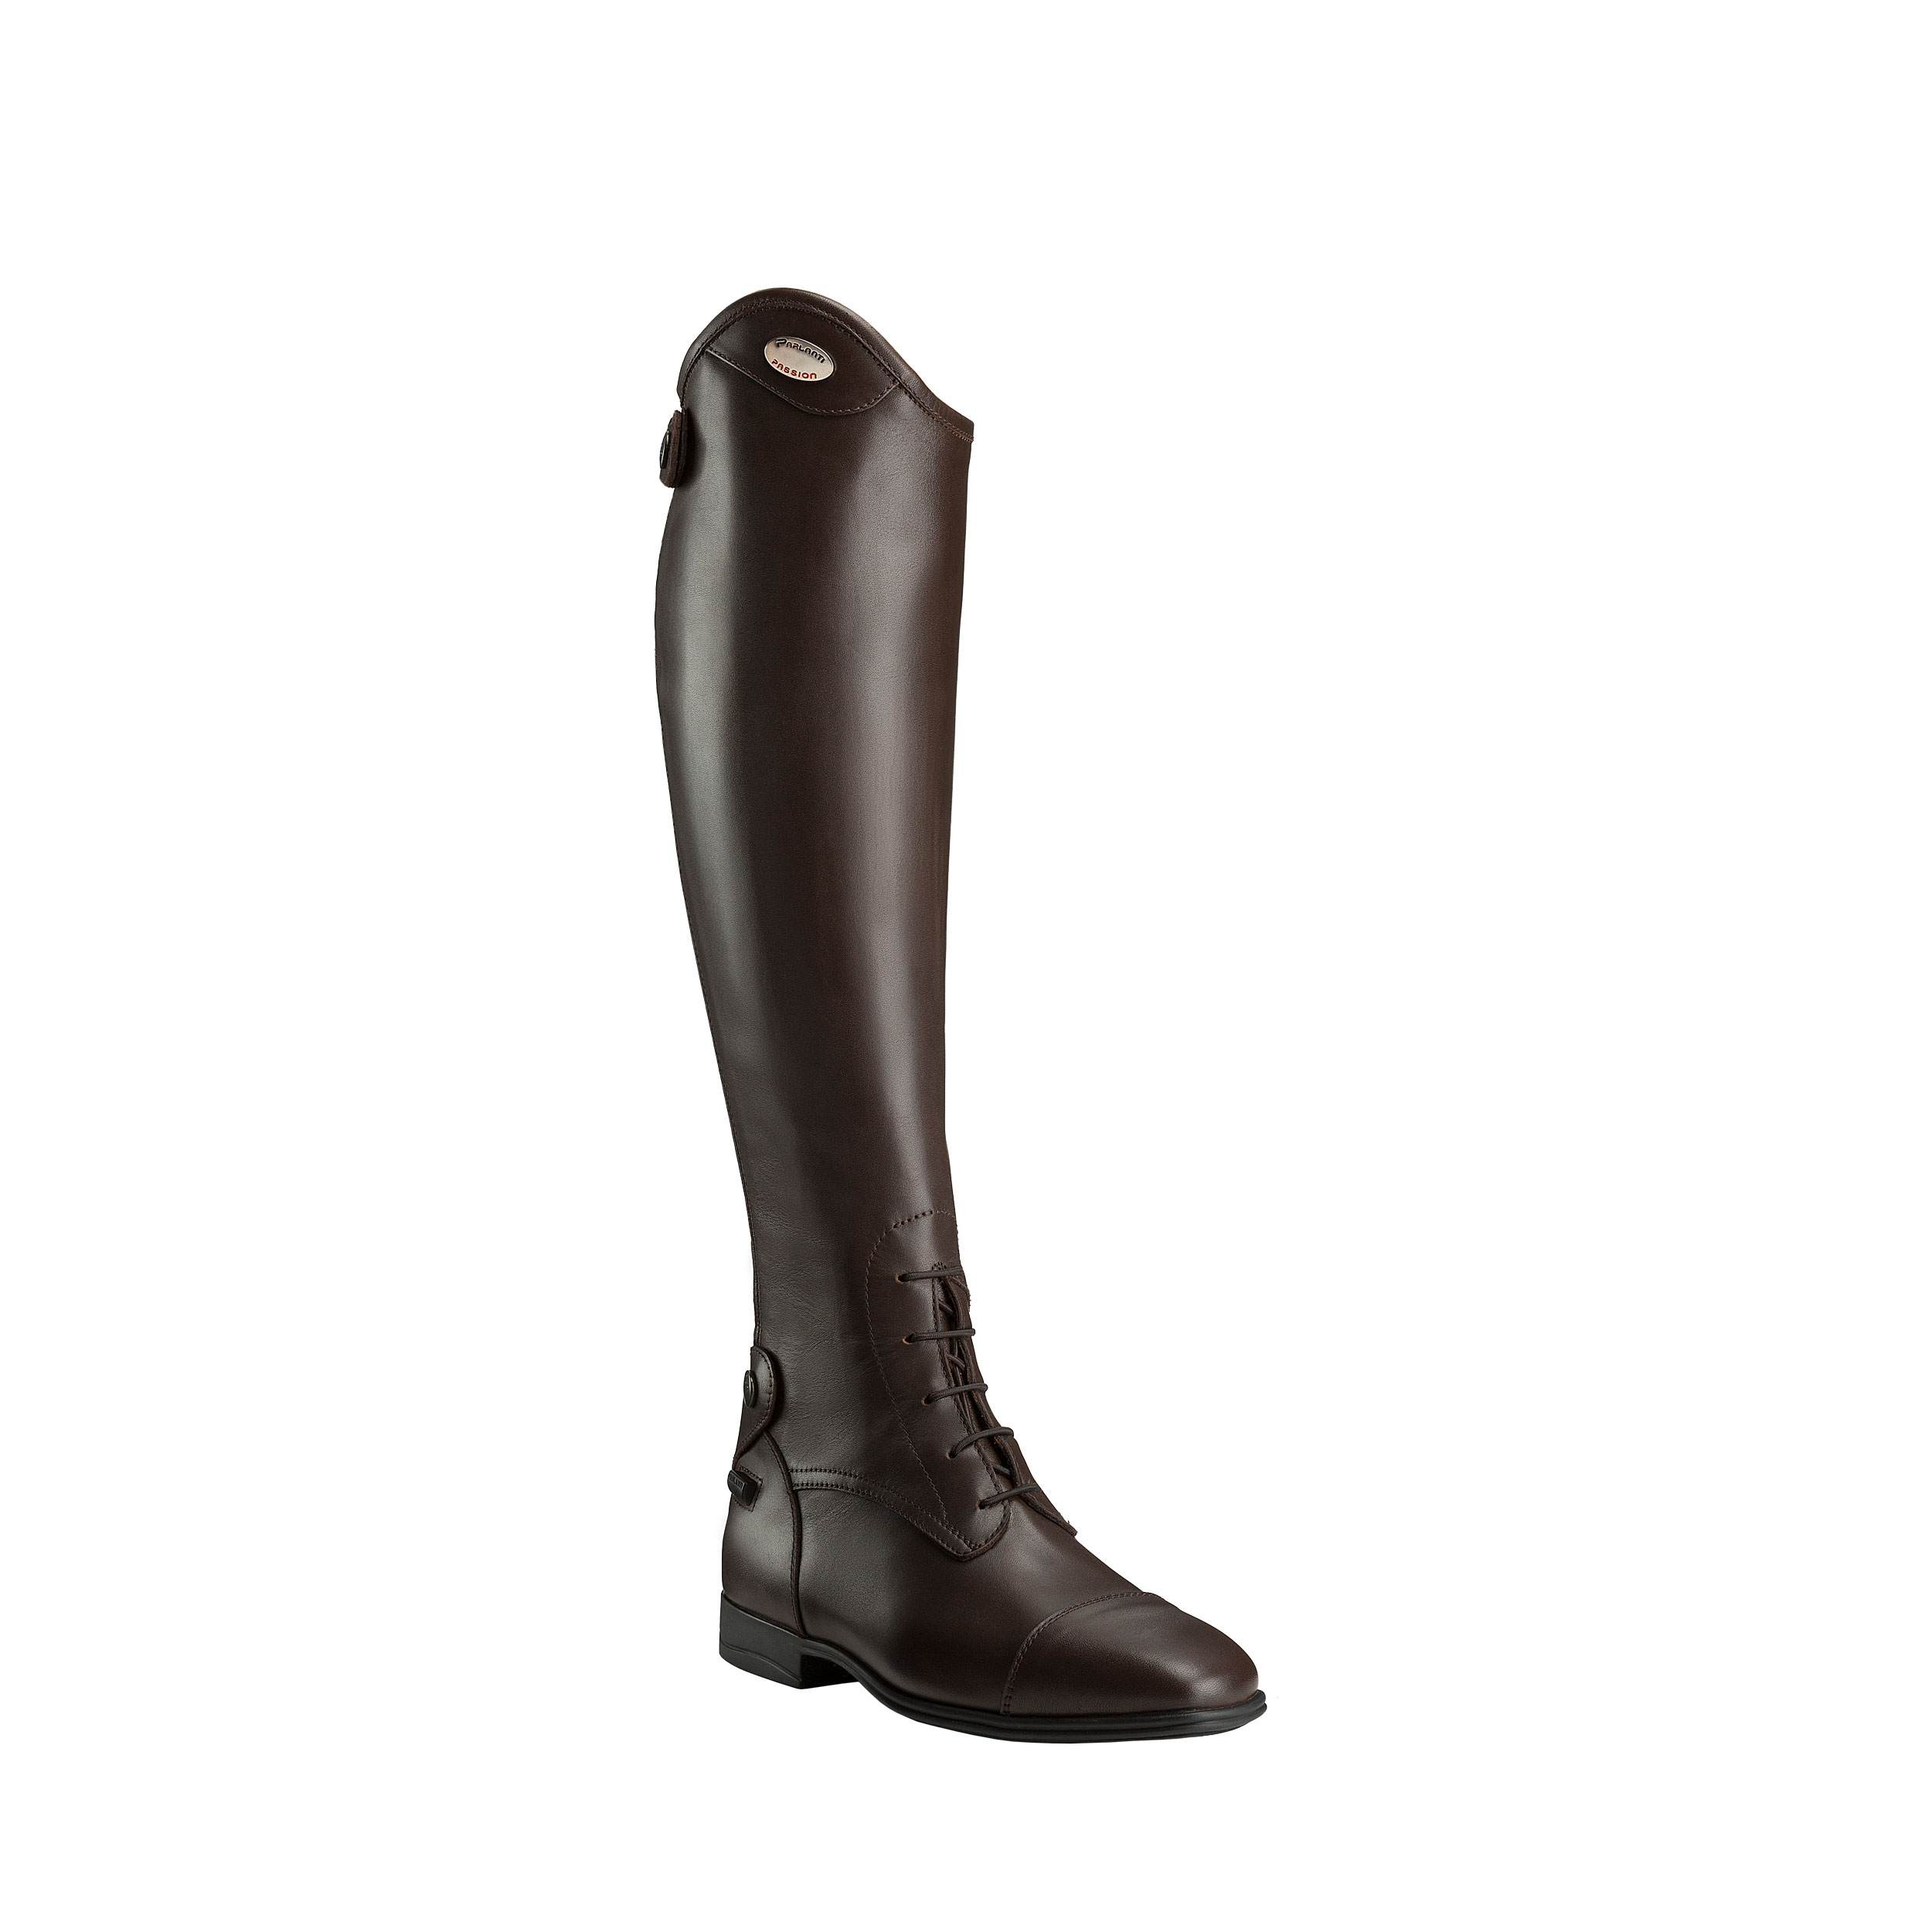 Parlanti Miami Riding Boots Brown